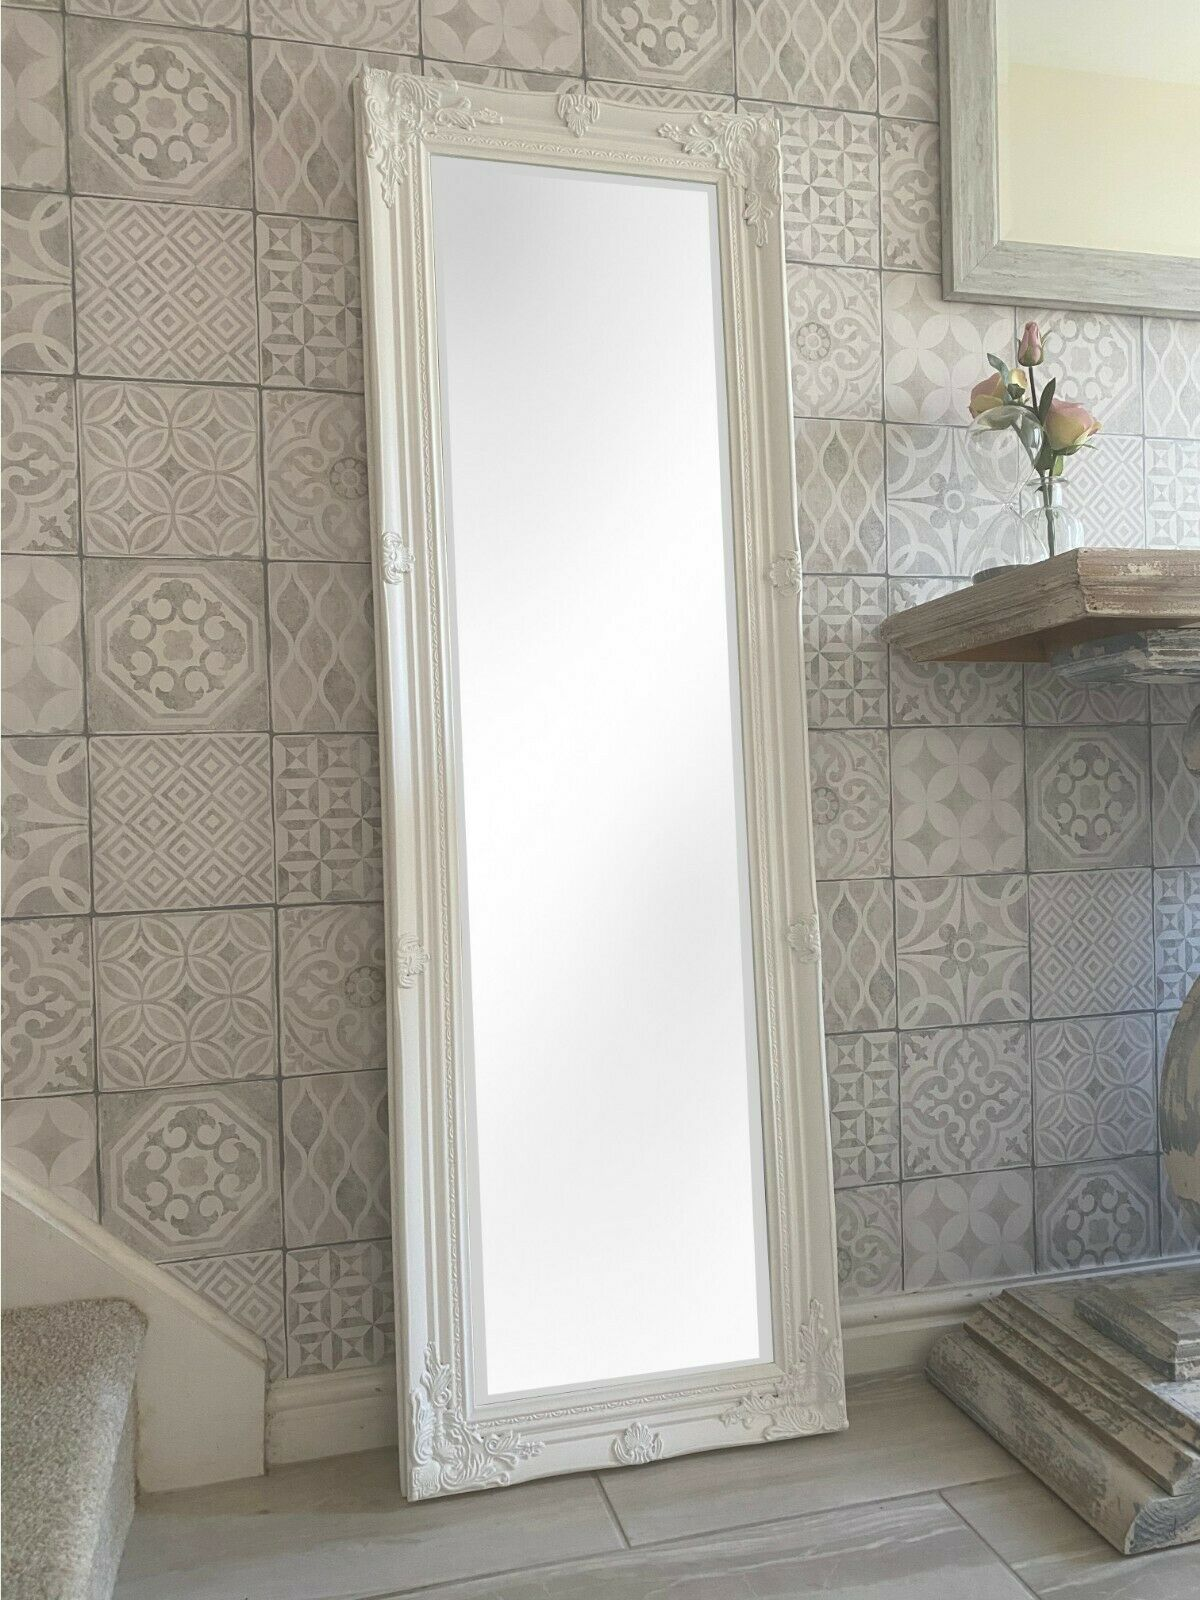 Tall antique white dressing room full length floor wall for White tall wall mirror